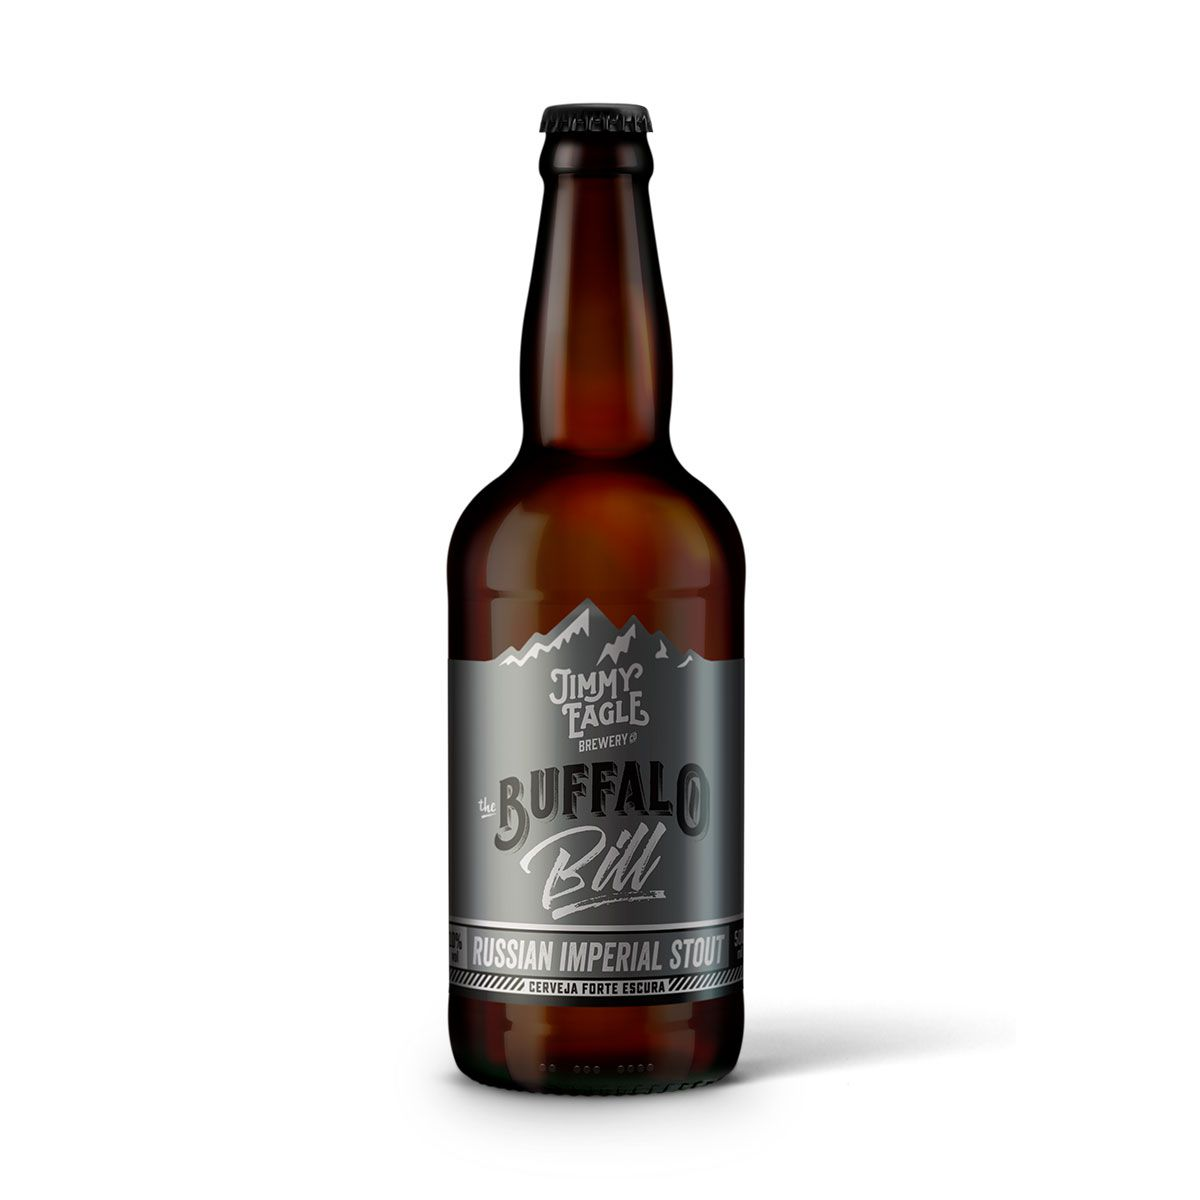 Jimmy Eagle Russian Imperial Stout Buffalo Bill 500ml  - RS BEER - Cervejas Gaúchas